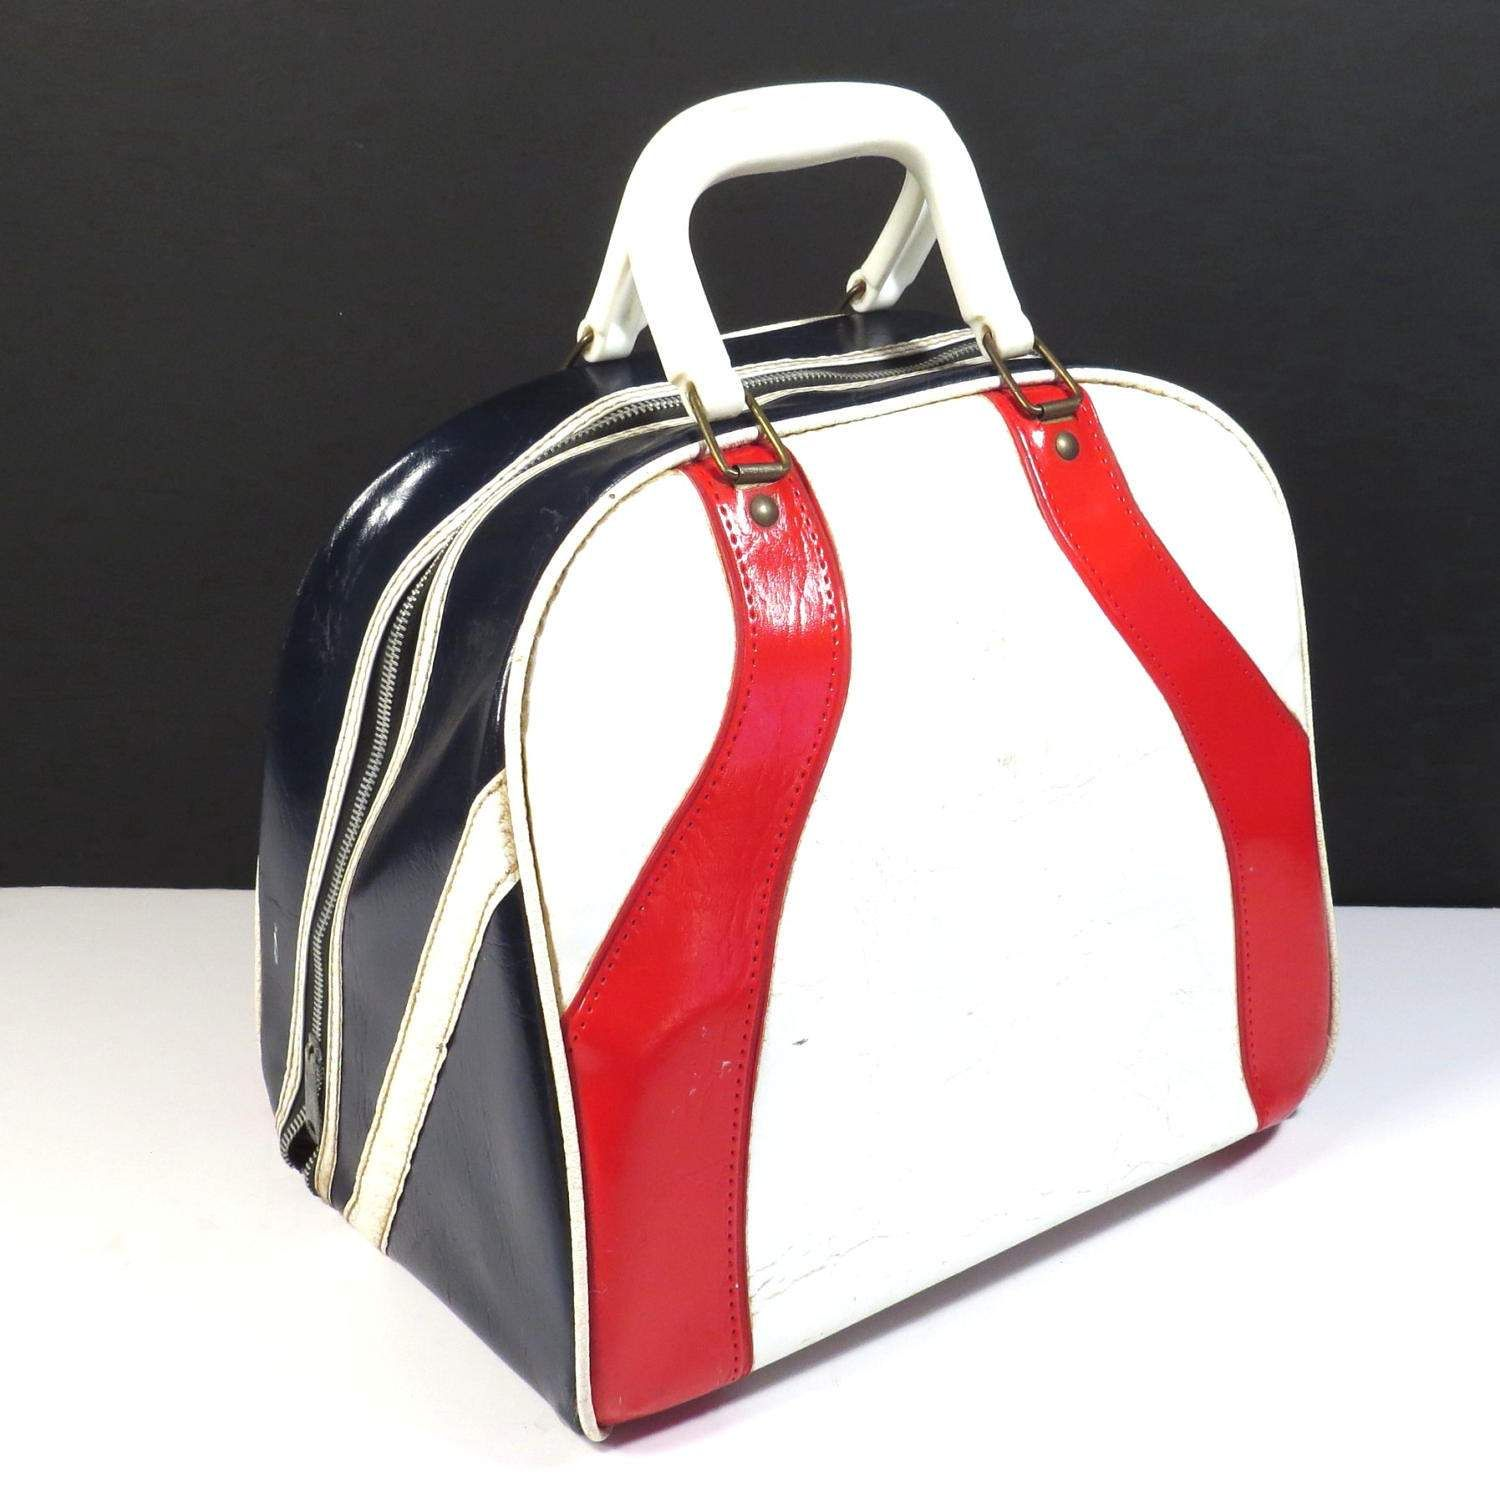 Red White And Blue Bowling Bag Vintage 1970s Retro Bowling Etsy Bowling Bags Bags Vintage Bags